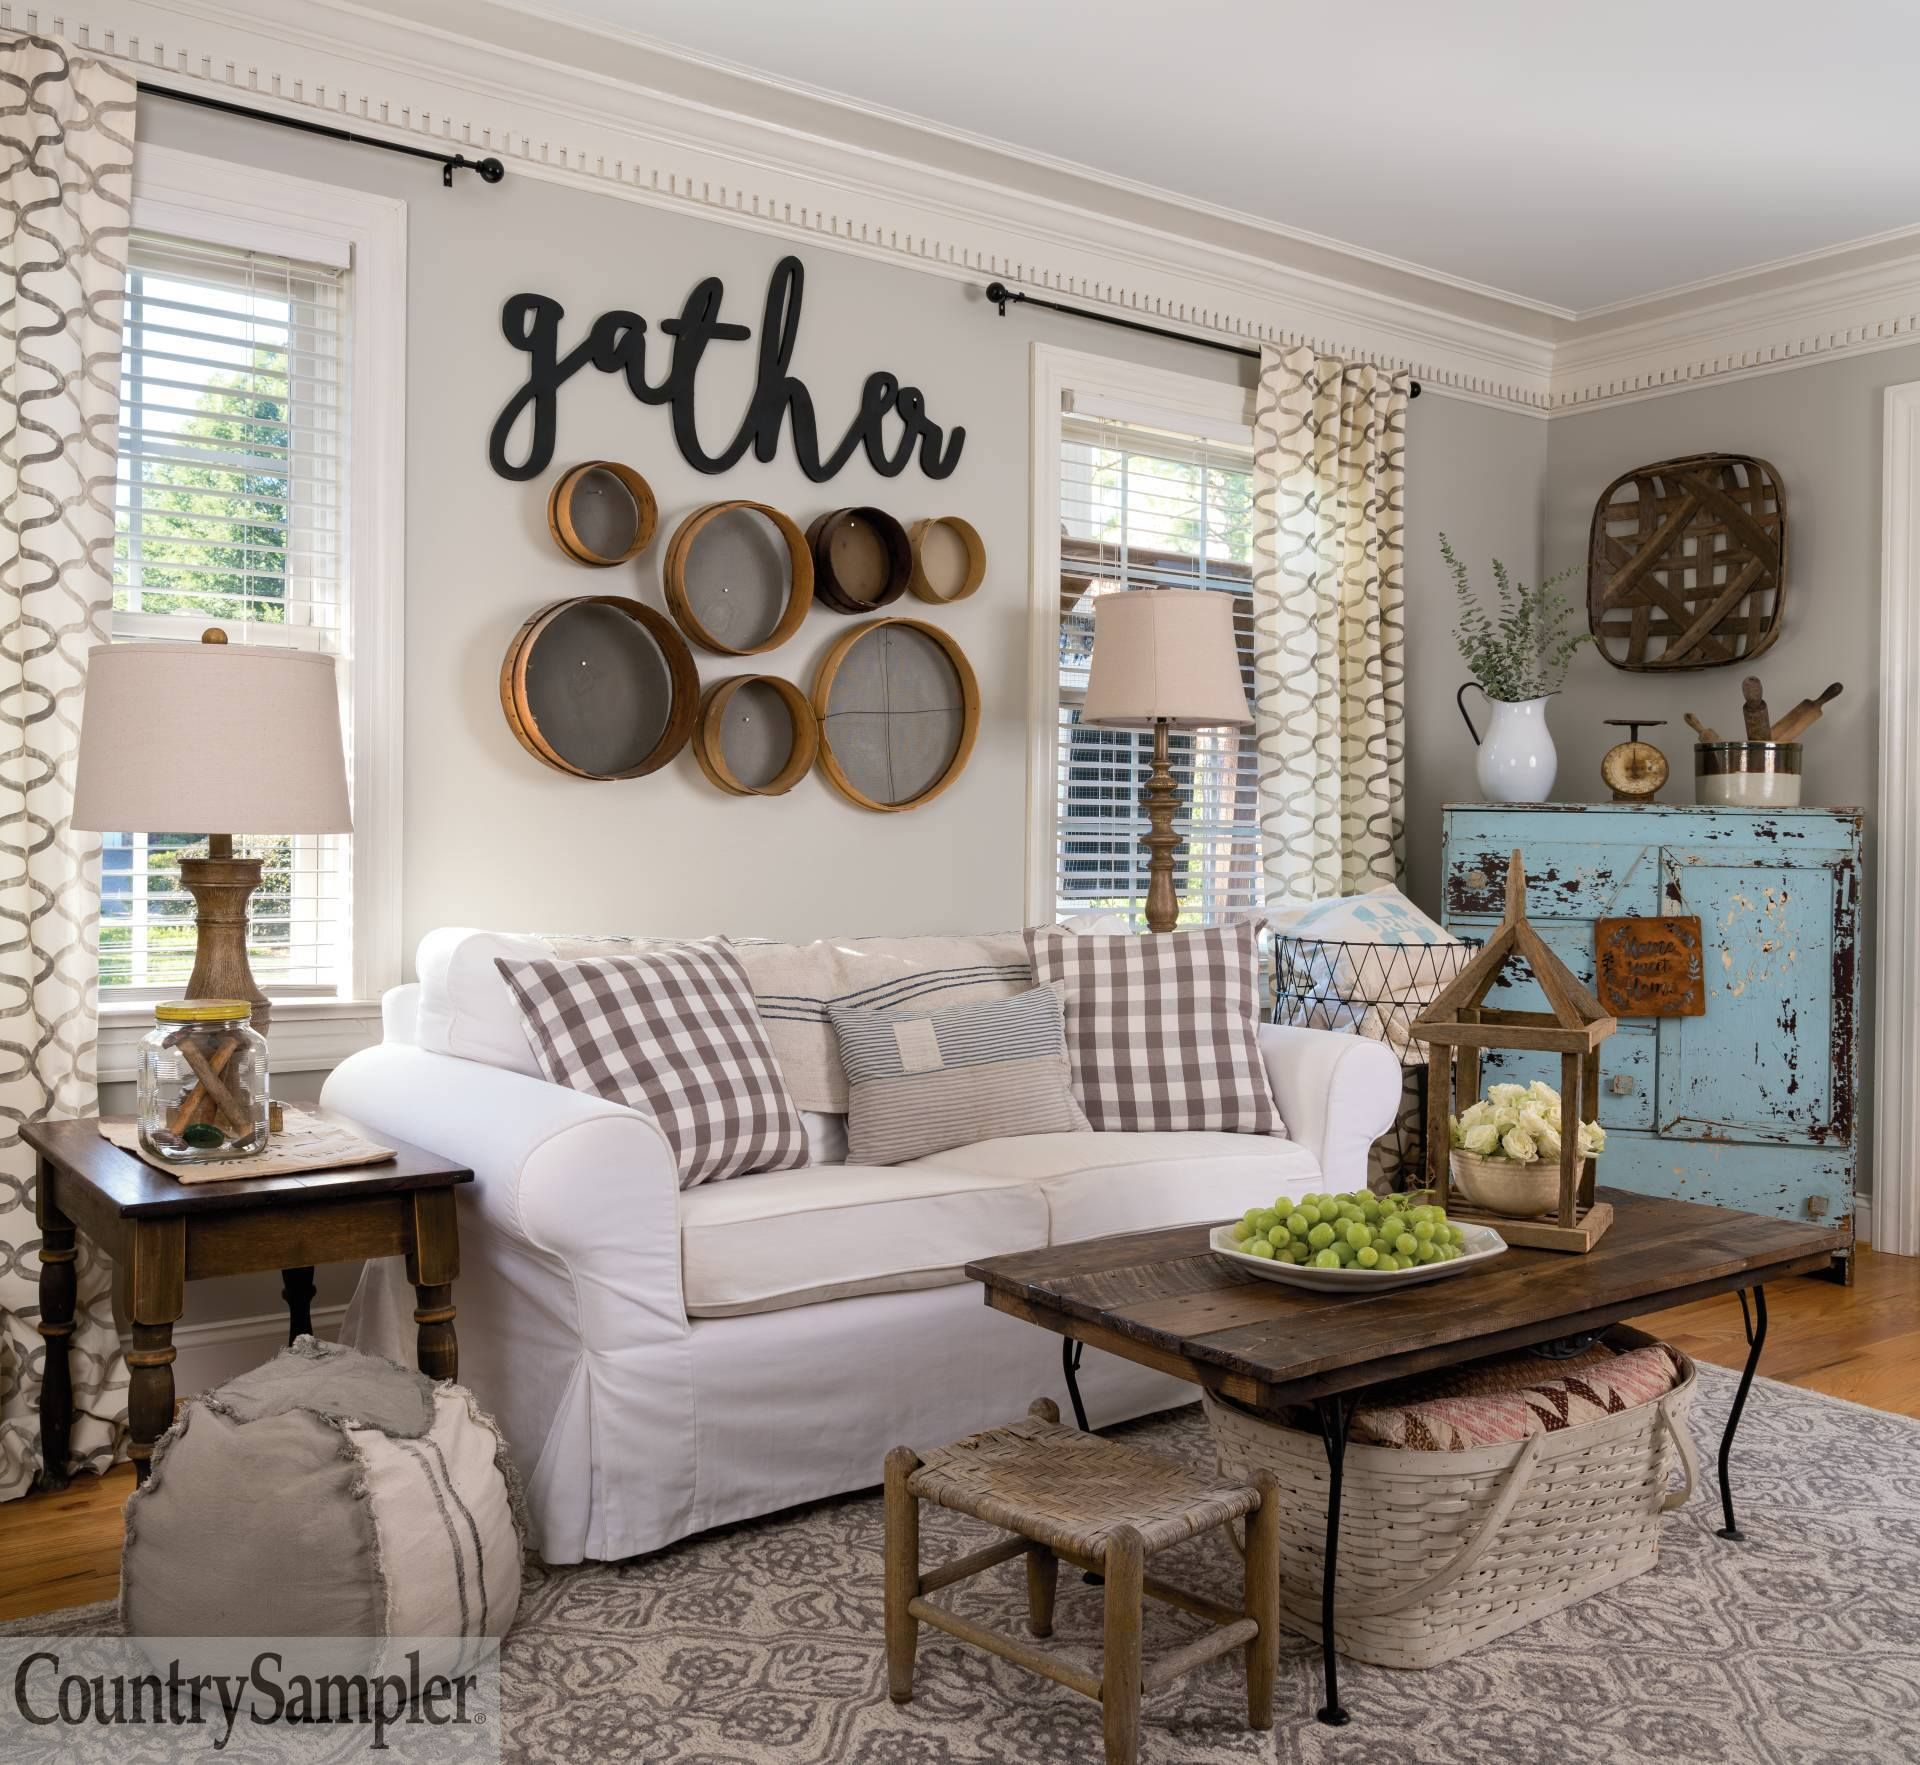 Homeowners Amy And Jason Grassinger Bring Vintage And Thrifted Finds Together In Fre In 2020 Primitive Country Living Room Farm House Living Room Primitive Living Room #primitive #decor #living #room